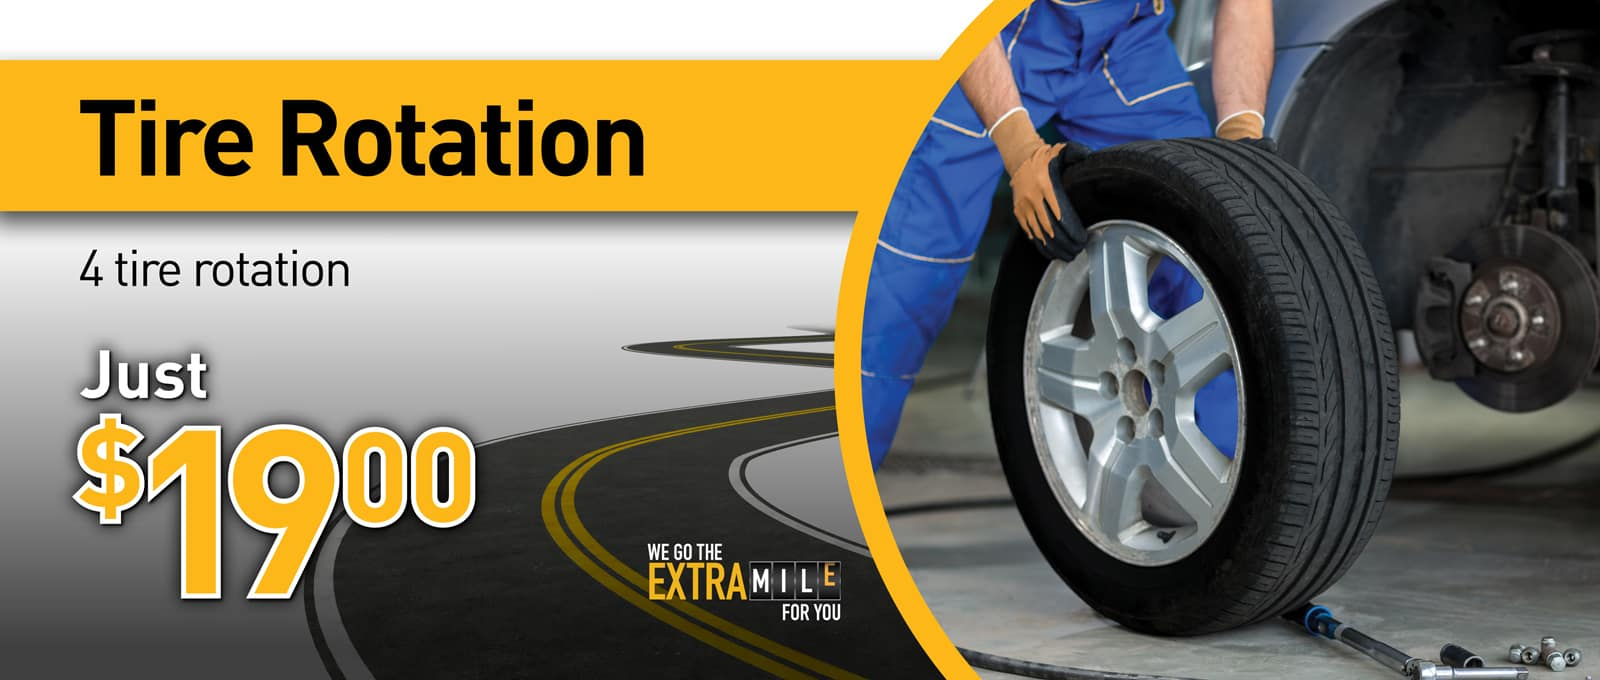 July tire rotation service ad